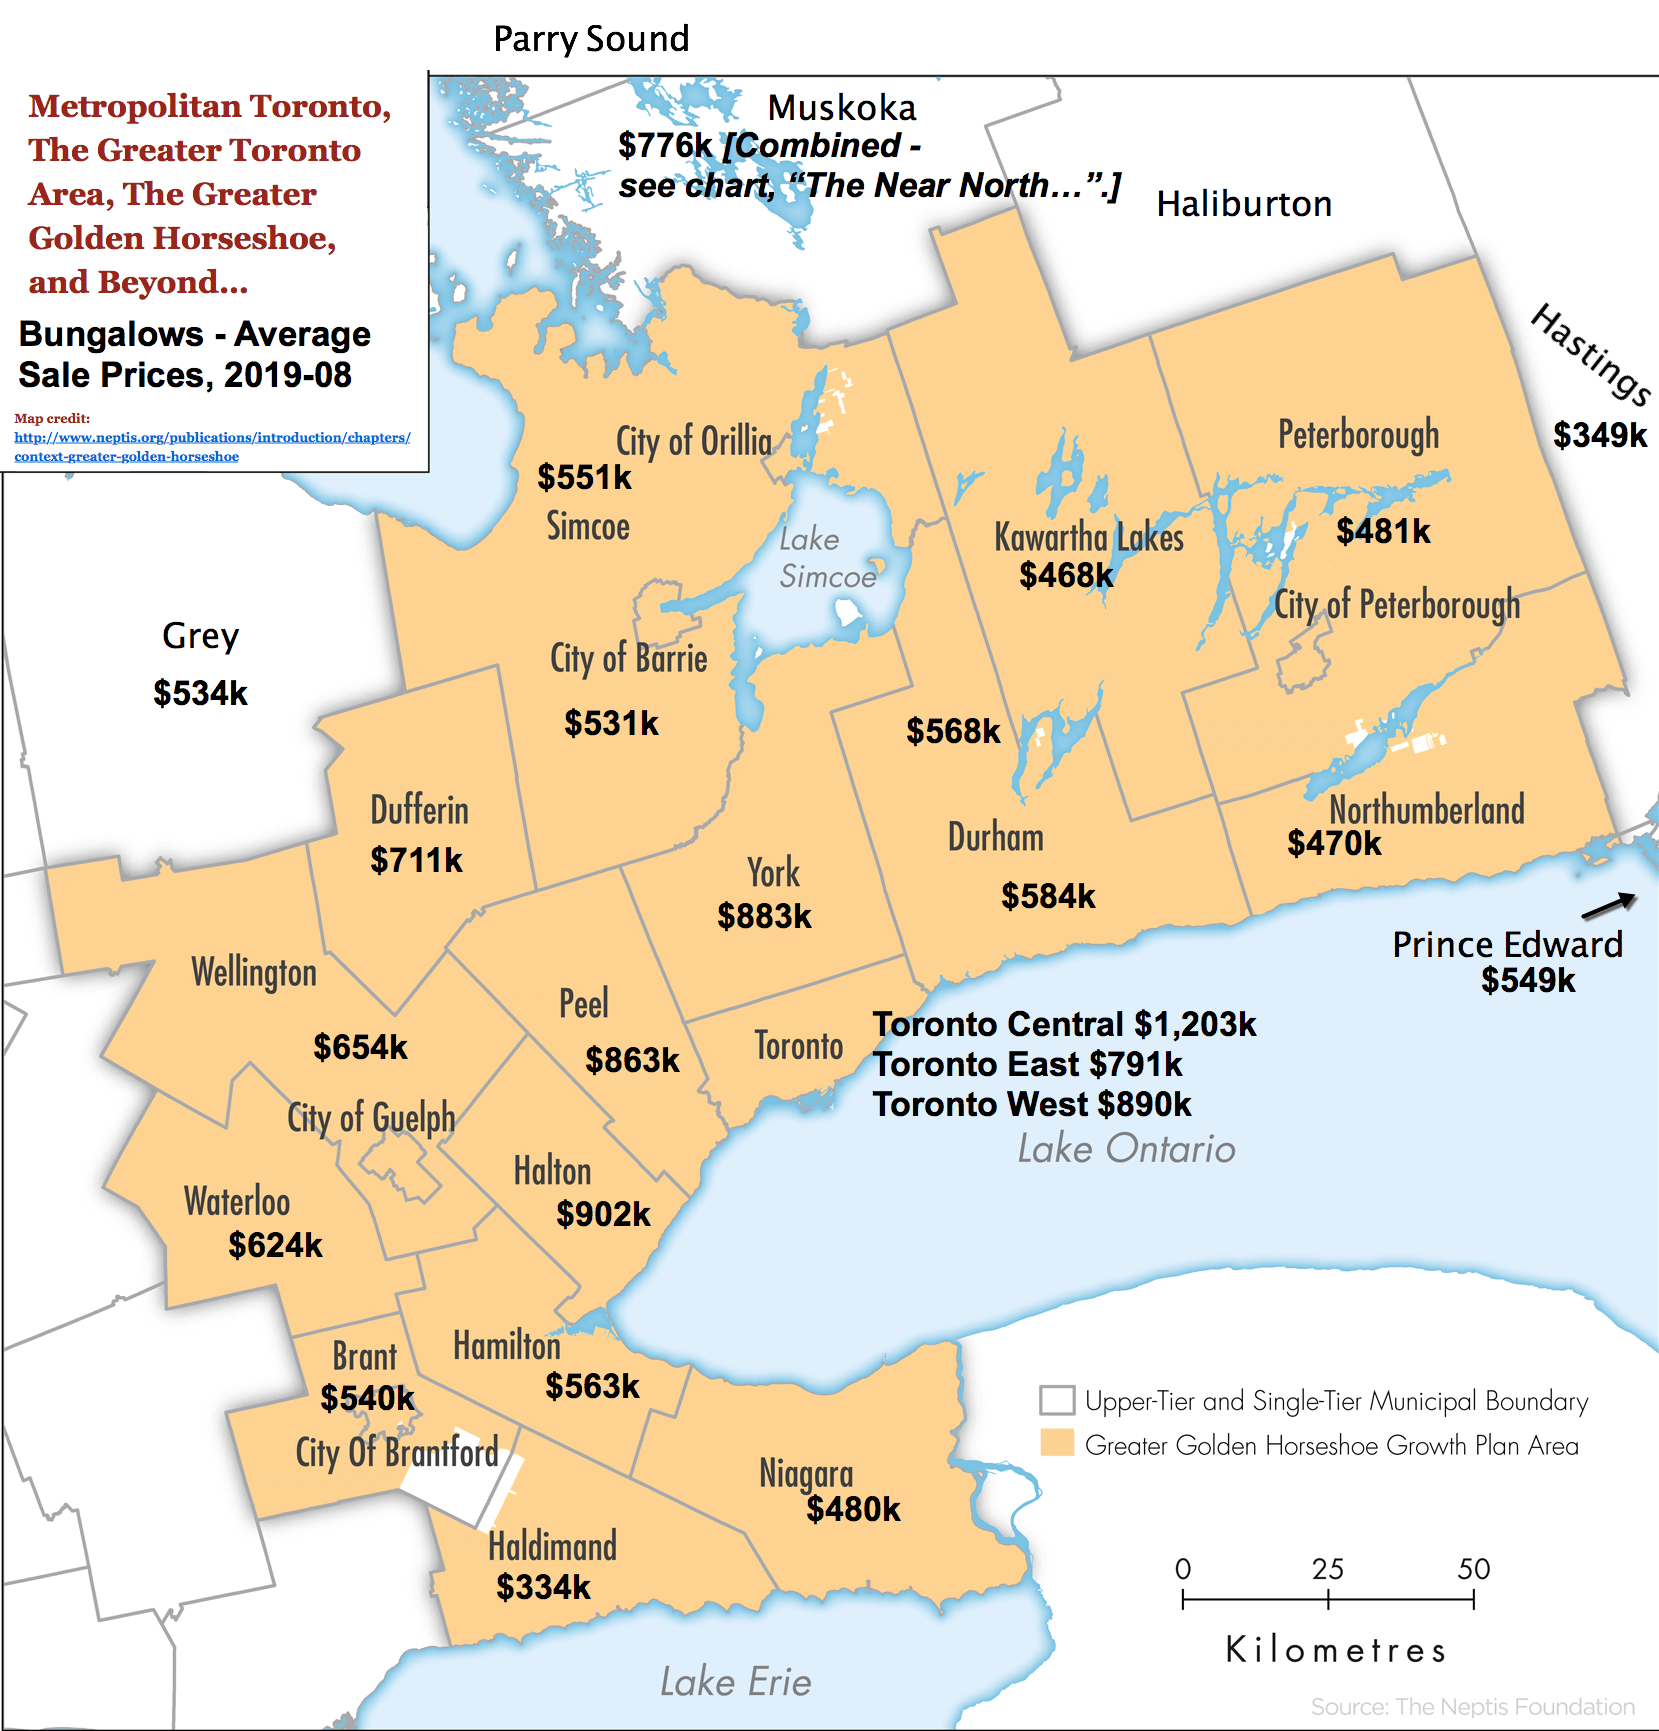 Image: Toronto / GTA / GGH Reference Map with 2019-08 Bungalow Prices & Stats by City / Region